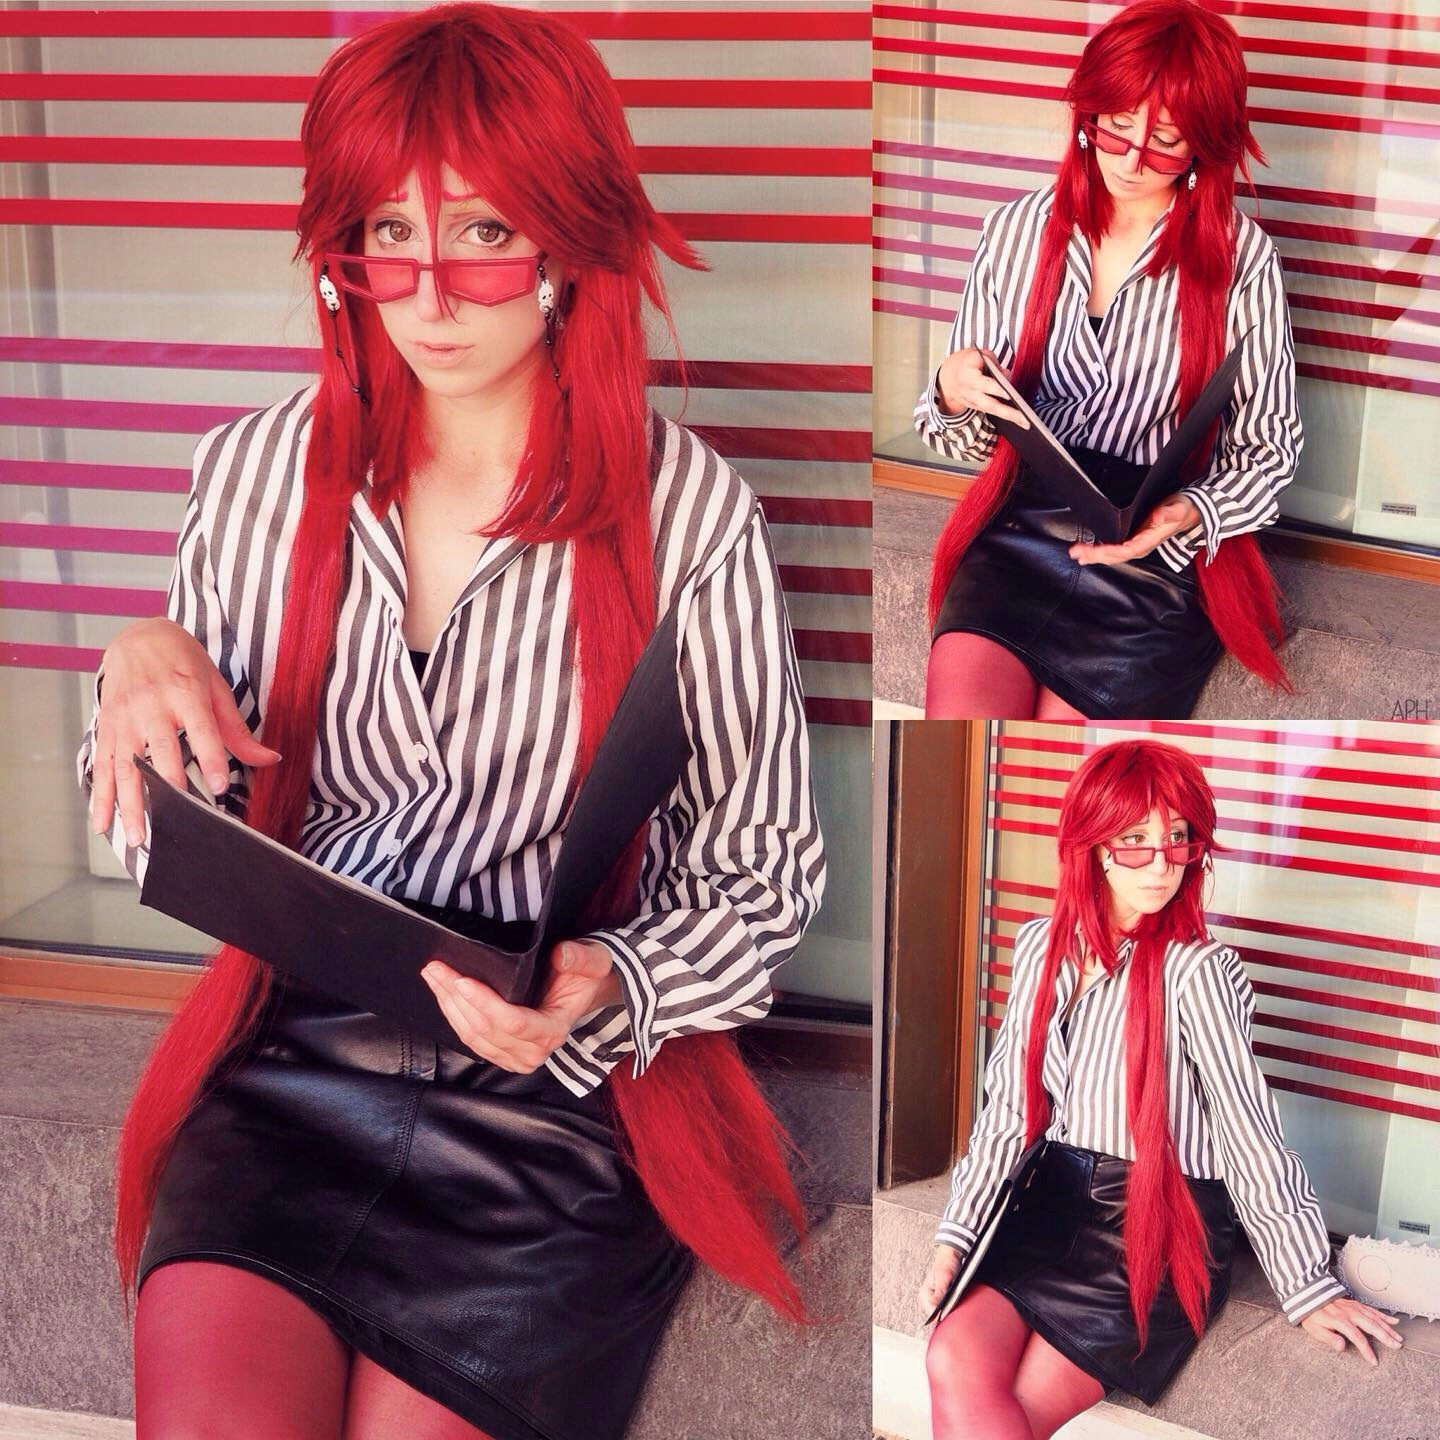 Cospix.net photo featuring Kurenai Sutcliff